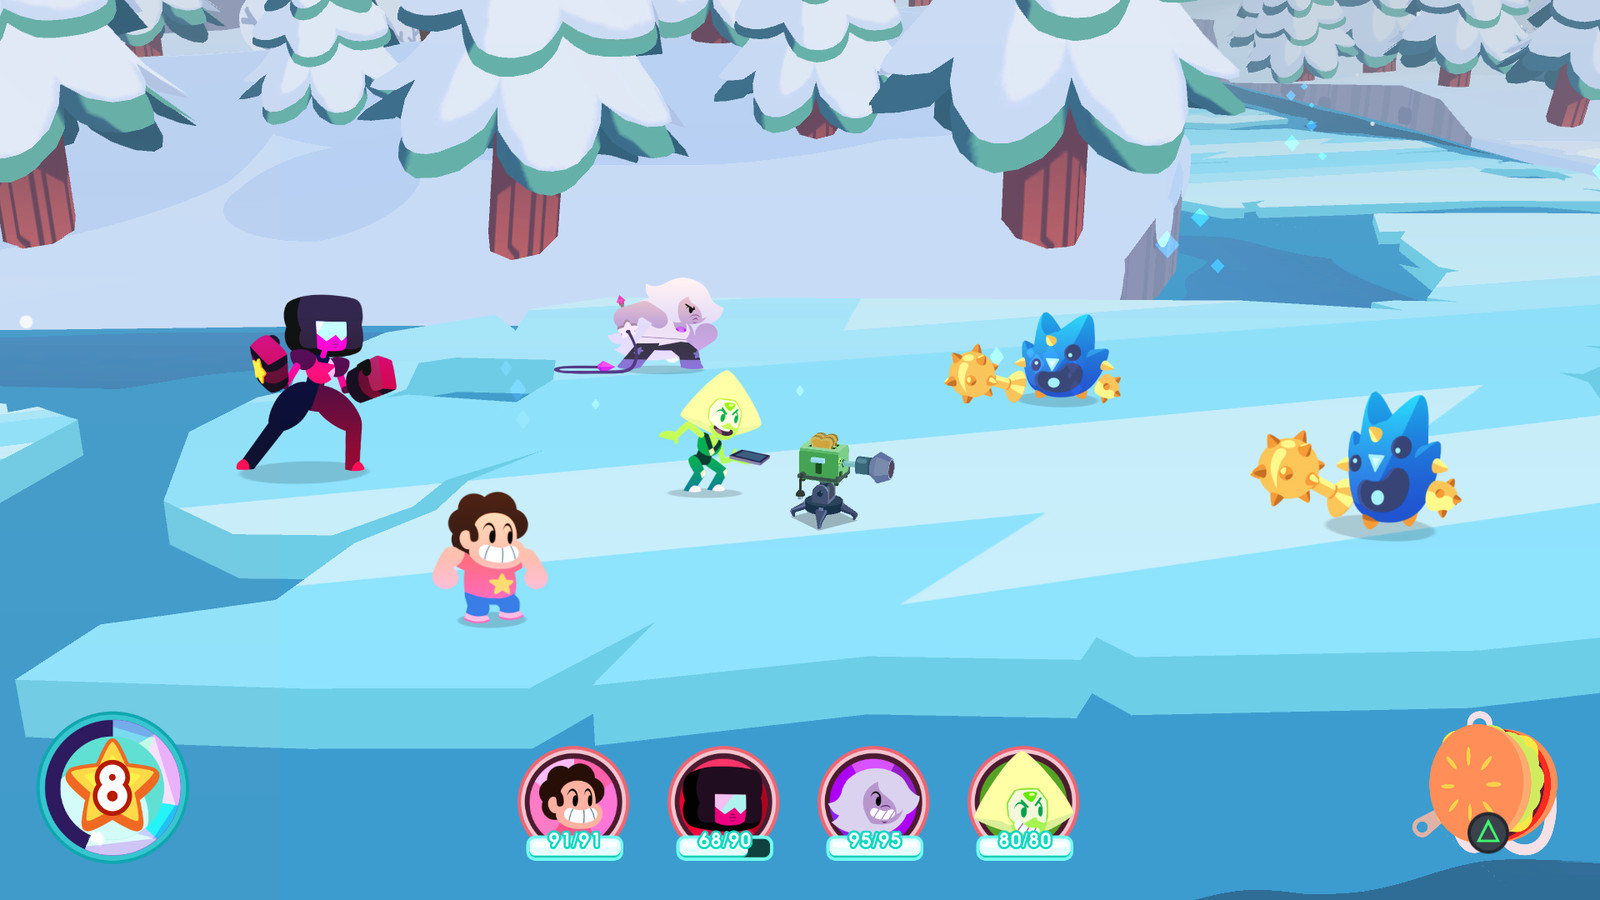 Steven Universe: Save the Light adds a fan favorite to the cast — and a totally new character